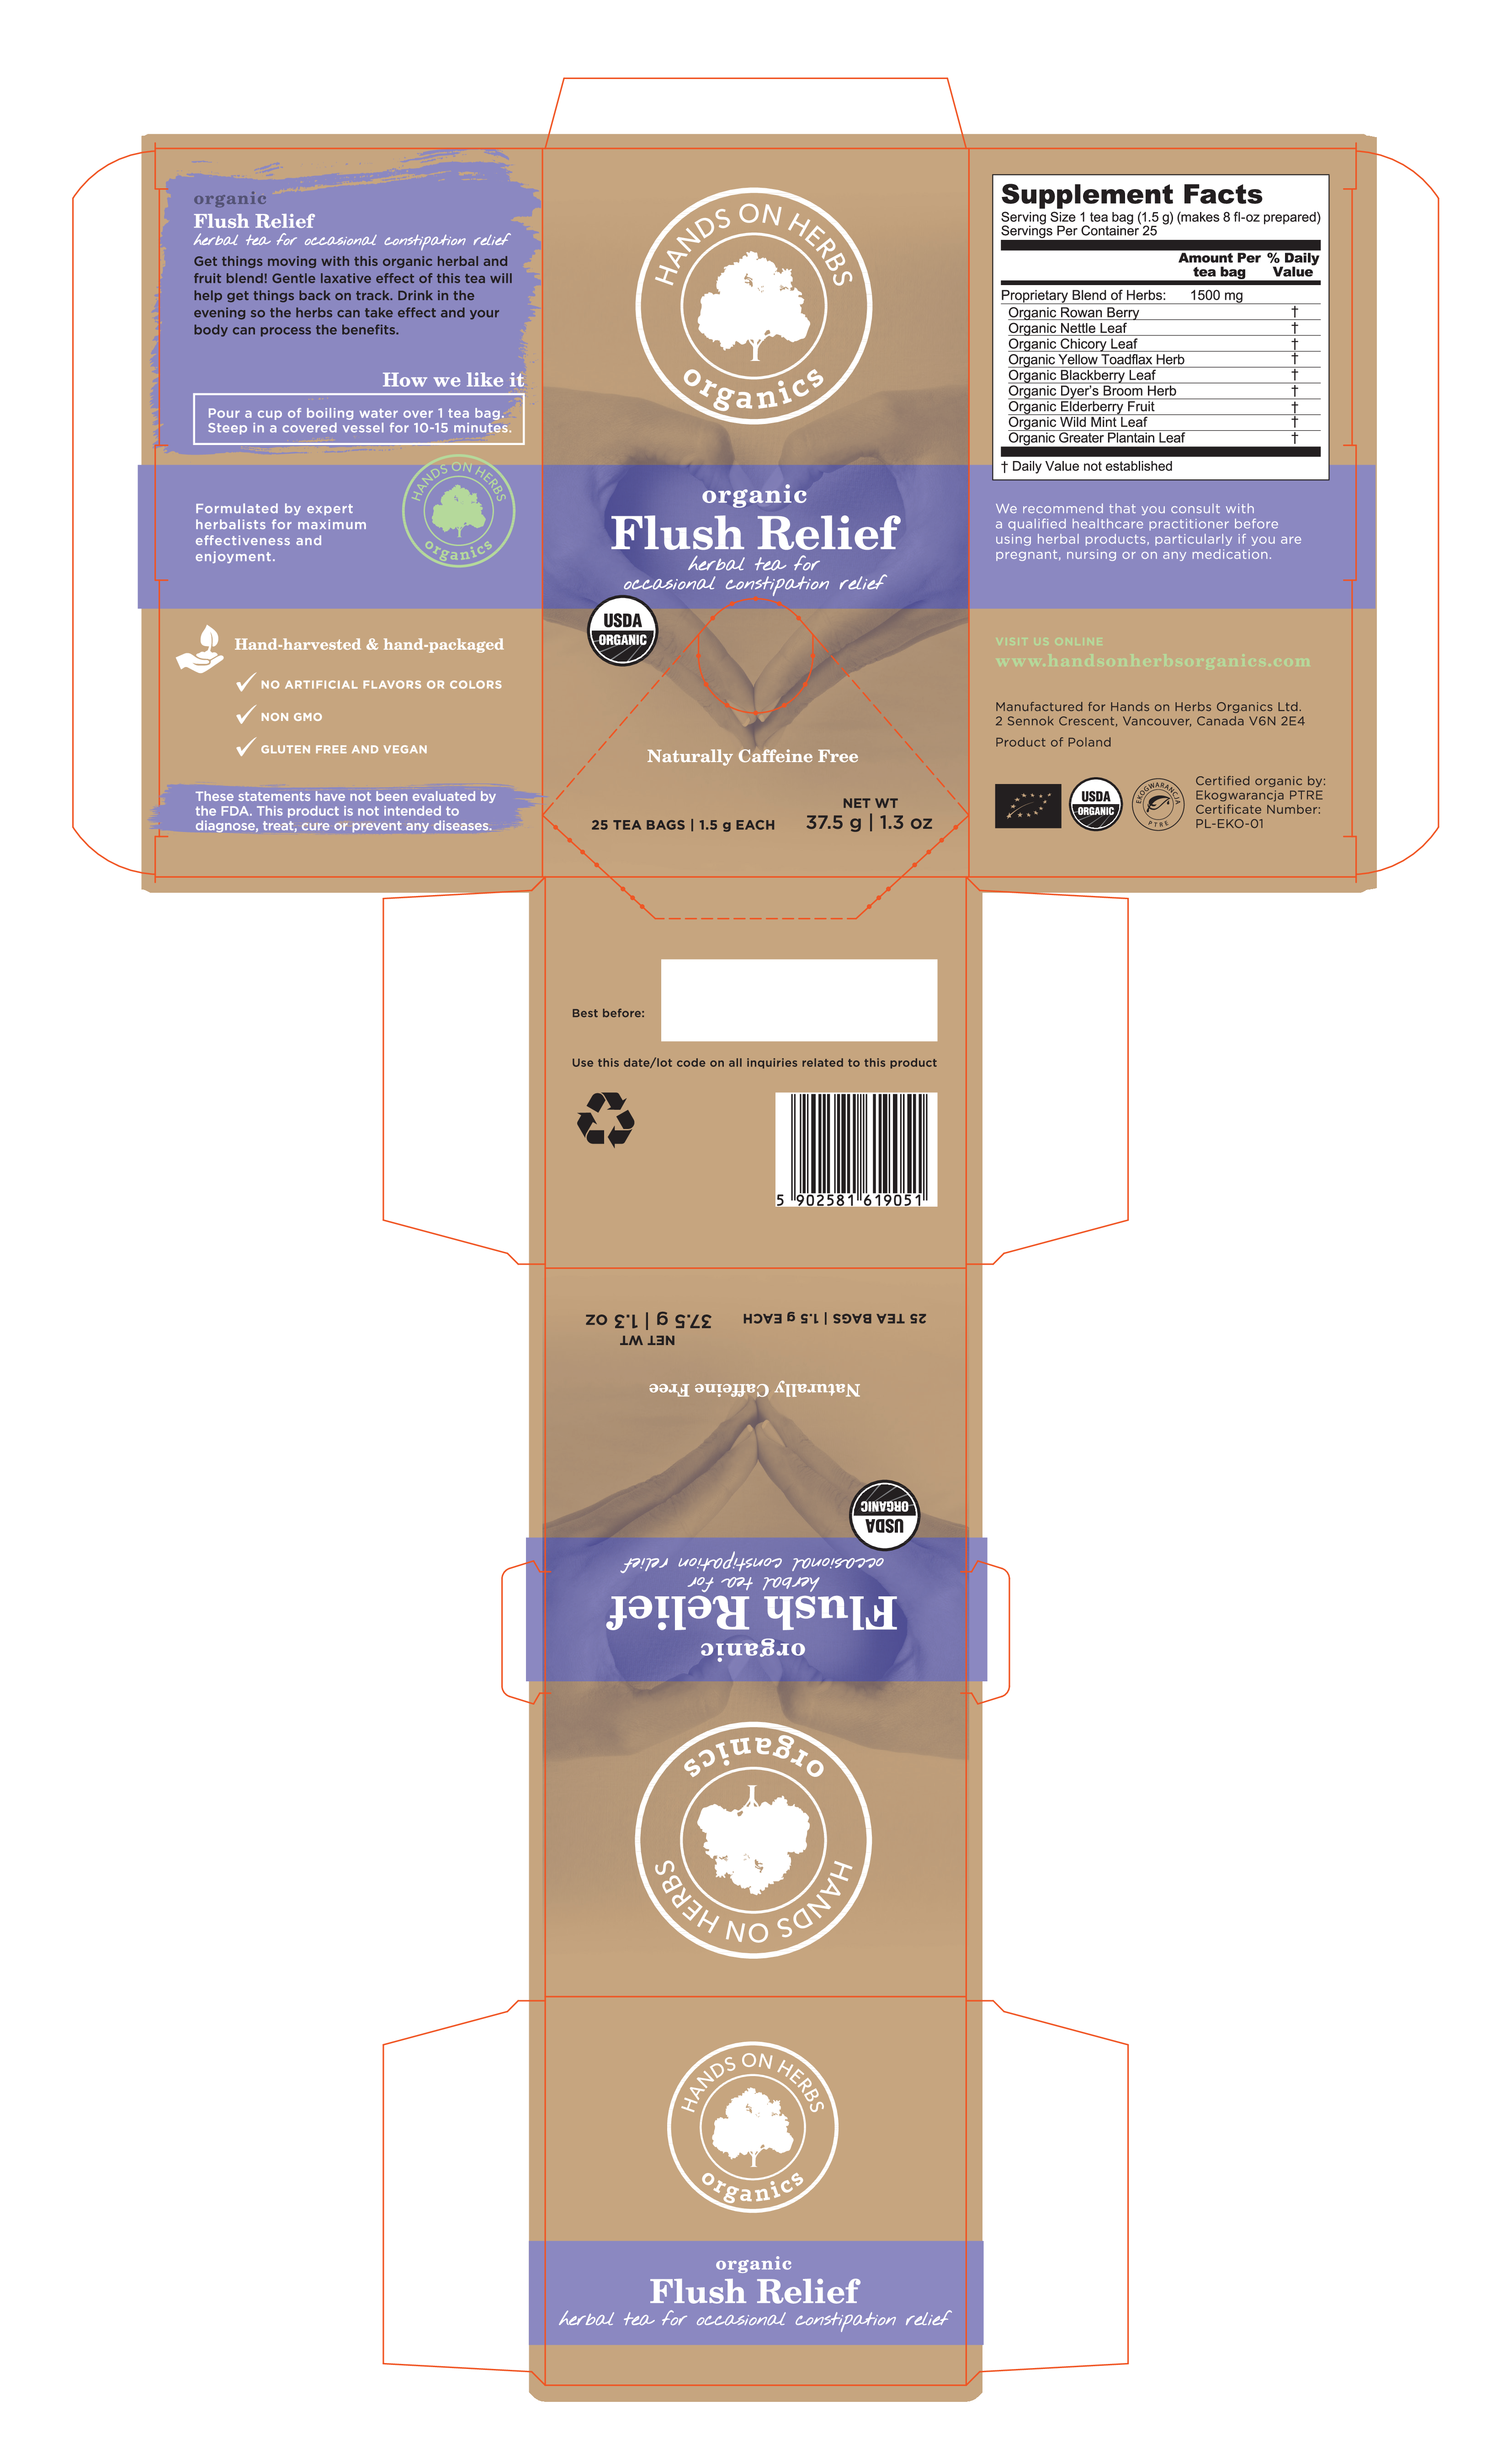 ORGANIC FLUSH RELIEF HERBAL TEA FOR OCCASIONAL CONSTIPATION